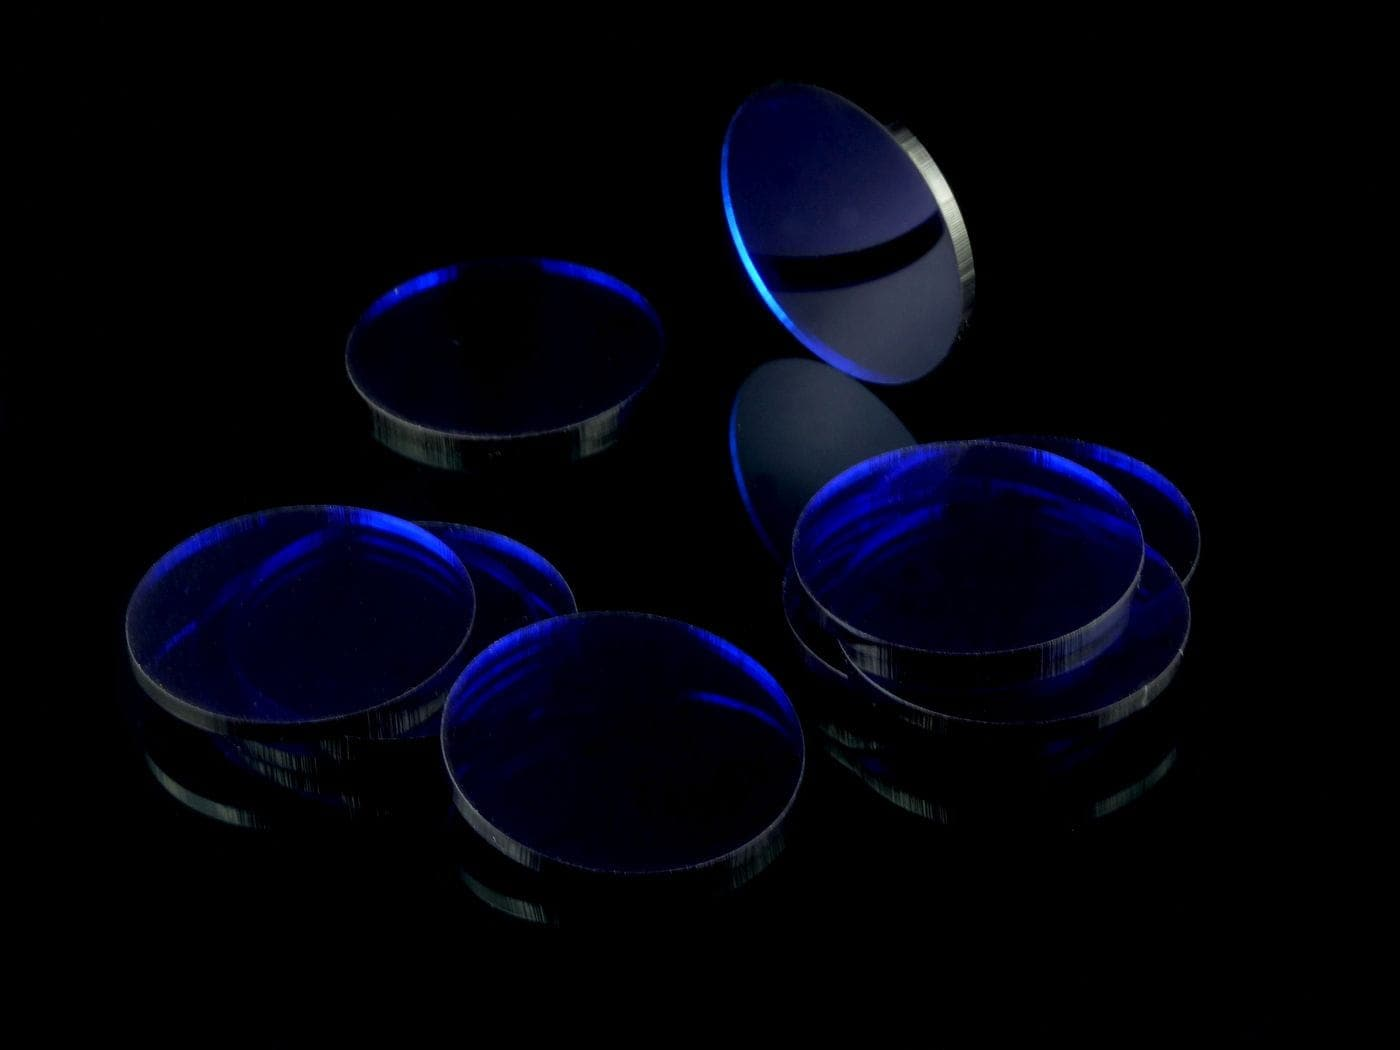 Acrylic miniature bases (10 pcs), round, clear, blue 50 x 3 mm - 2